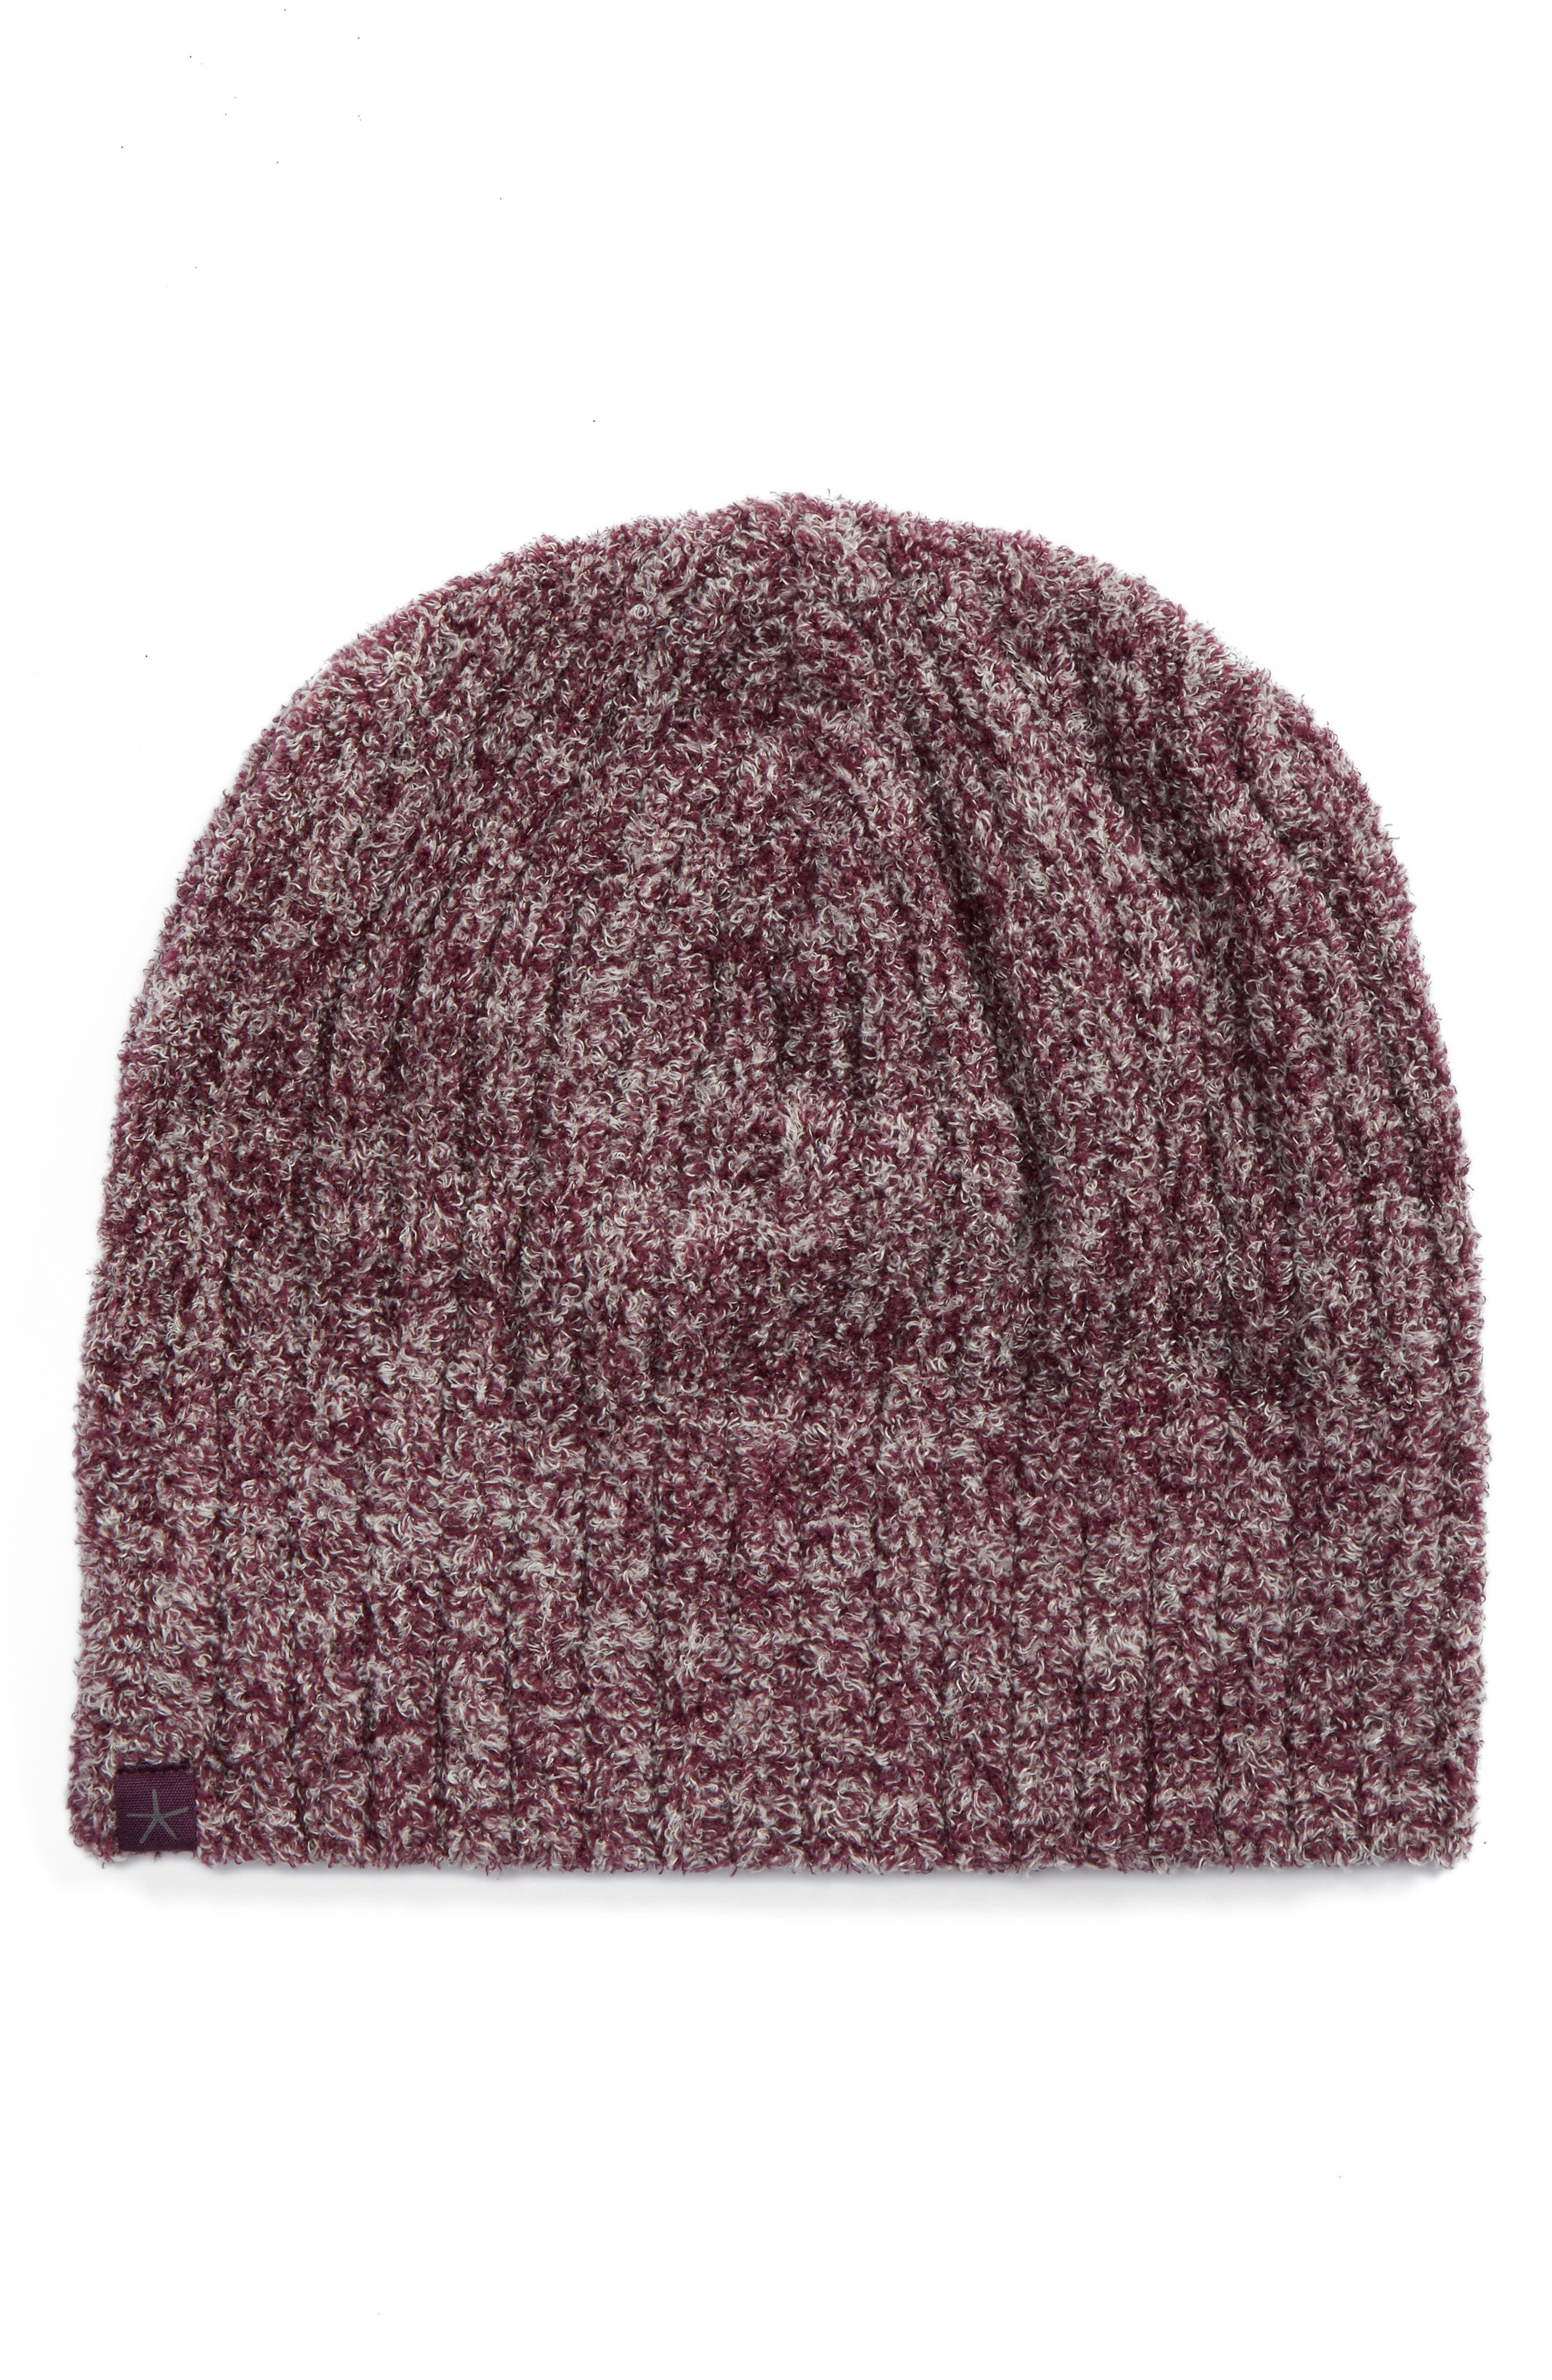 Circle Ribbed Beanie,                             Main thumbnail 1, color,                             Burgundy/ Stone Heather